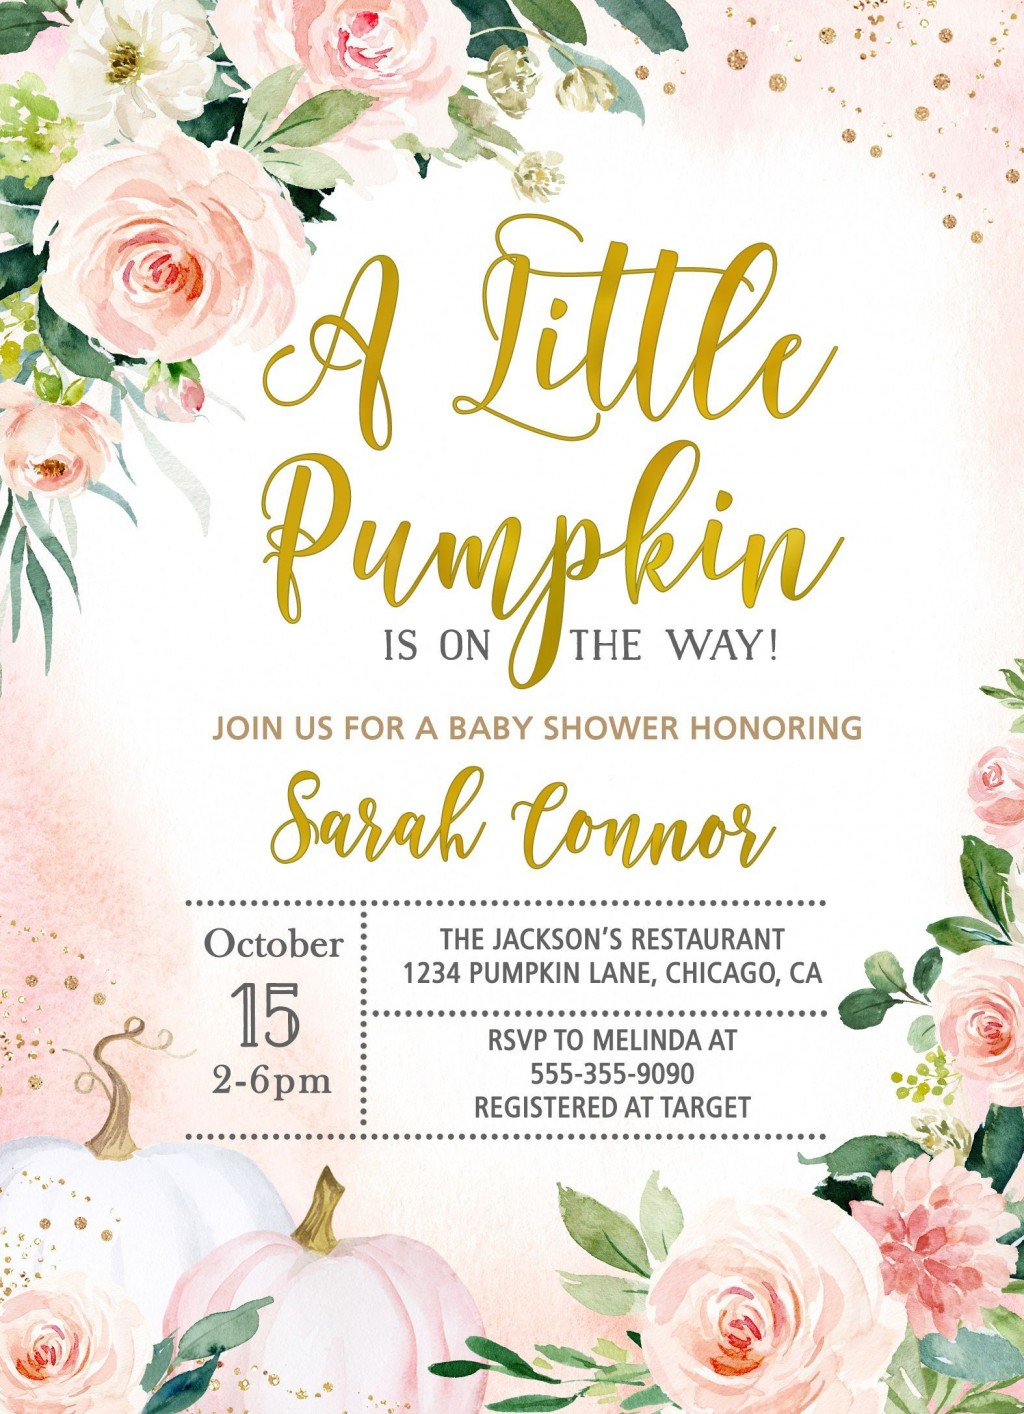 004 Marvelou Baby Shower Invitation Girl Pumpkin High Def  LittleLarge